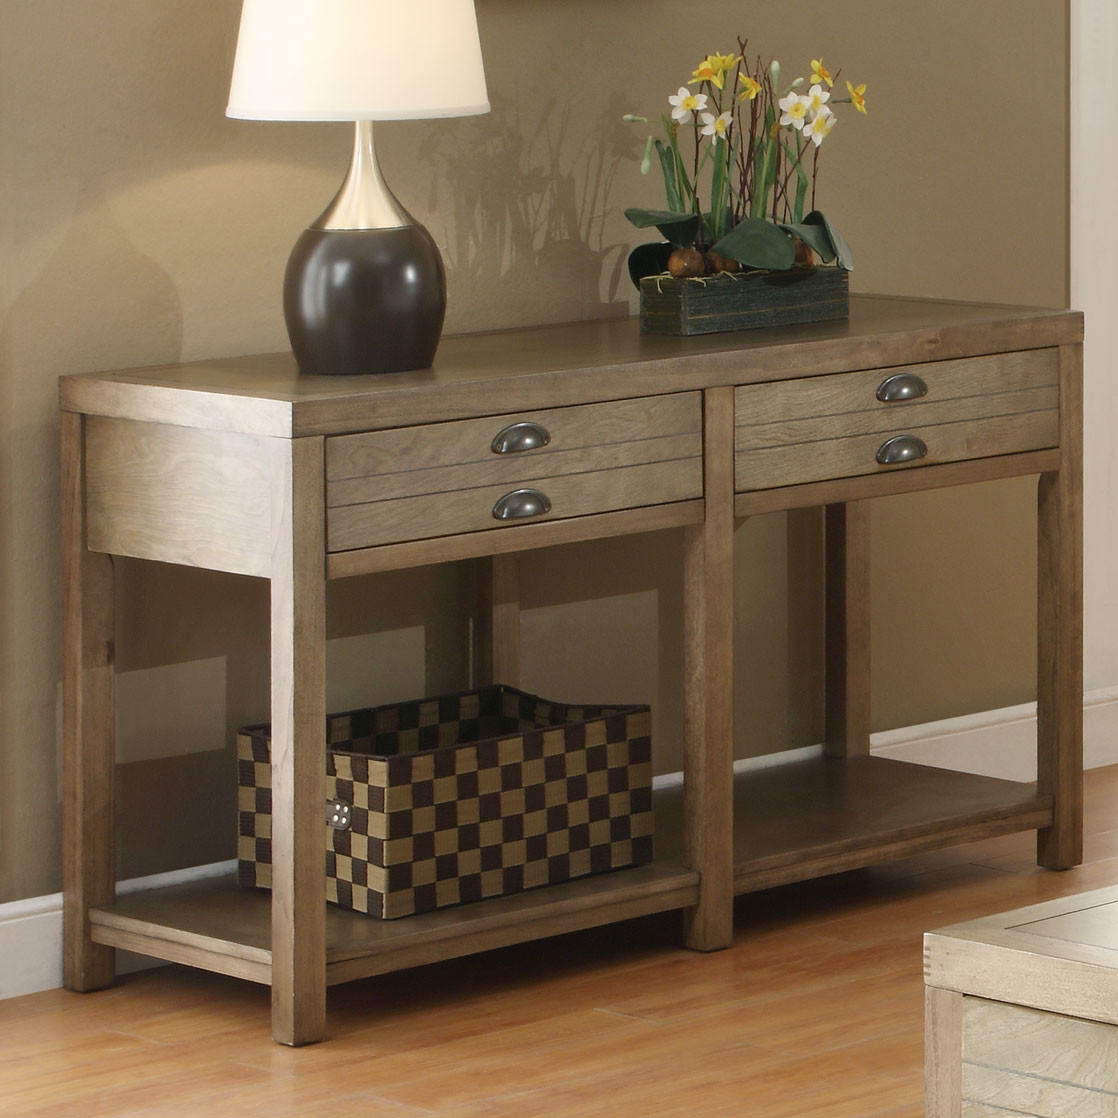 Console style foyer table